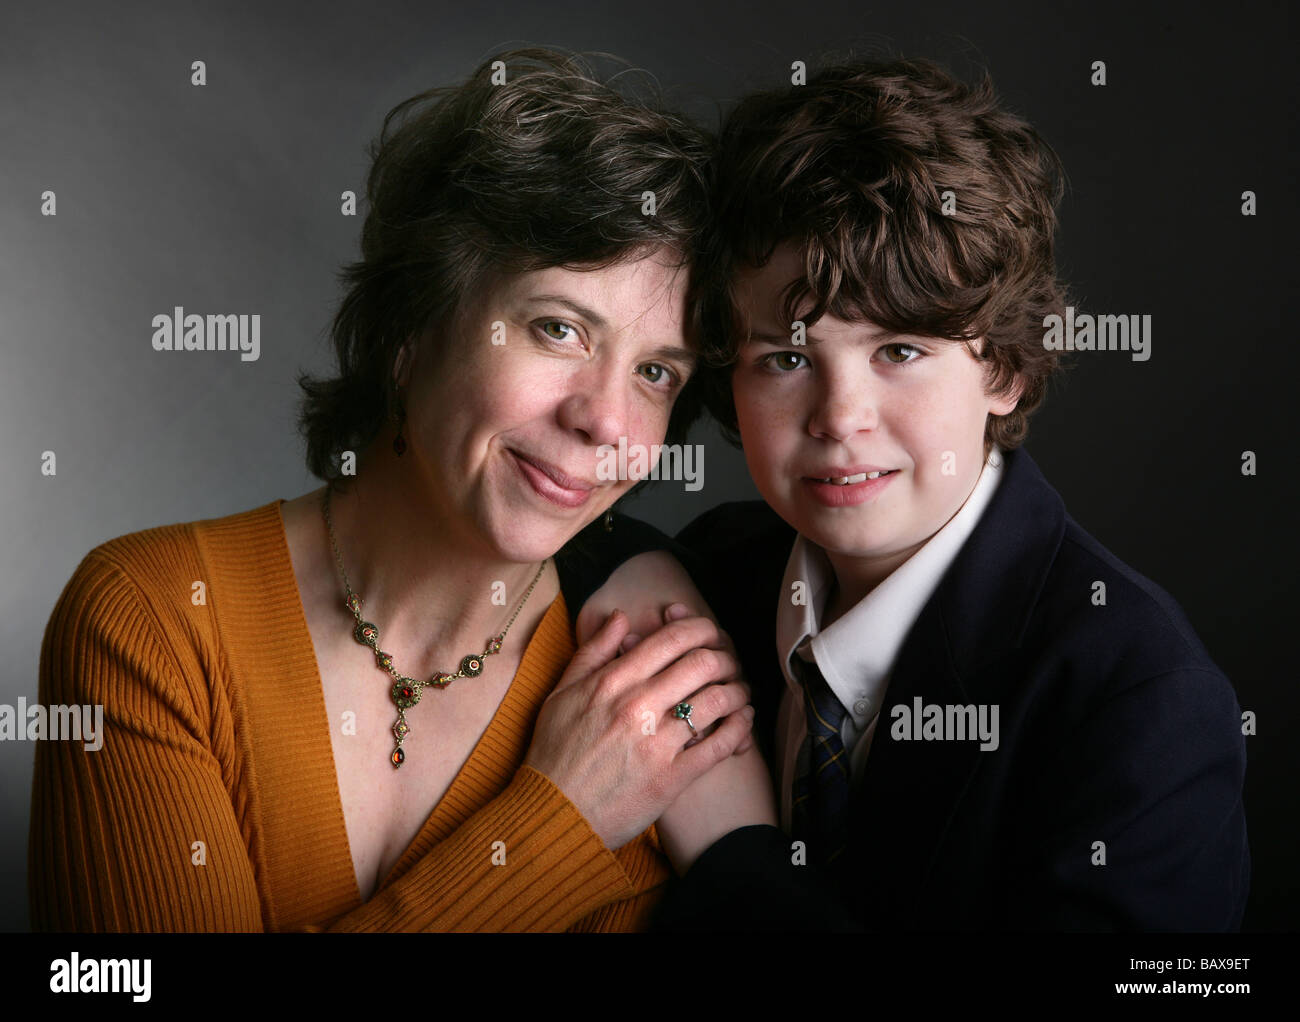 A mother and child portrait. Motherhood - Stock Image